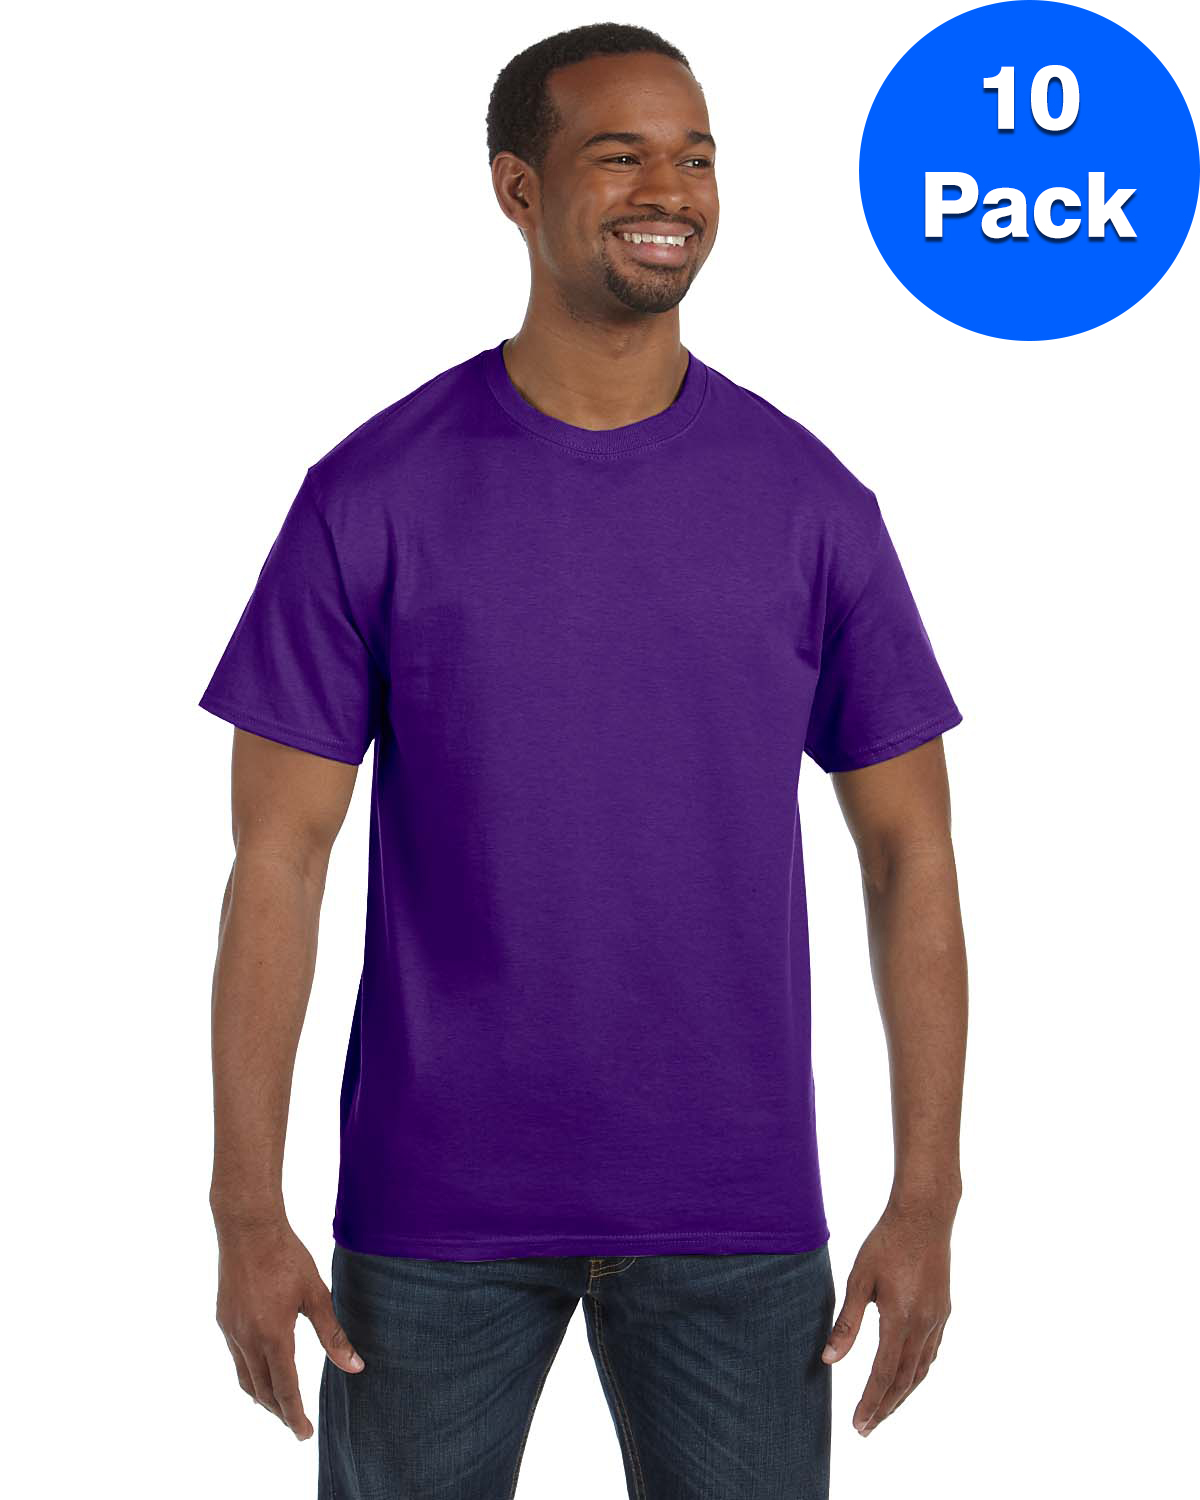 T-shirt I Tried It At Home Men/'s Purple